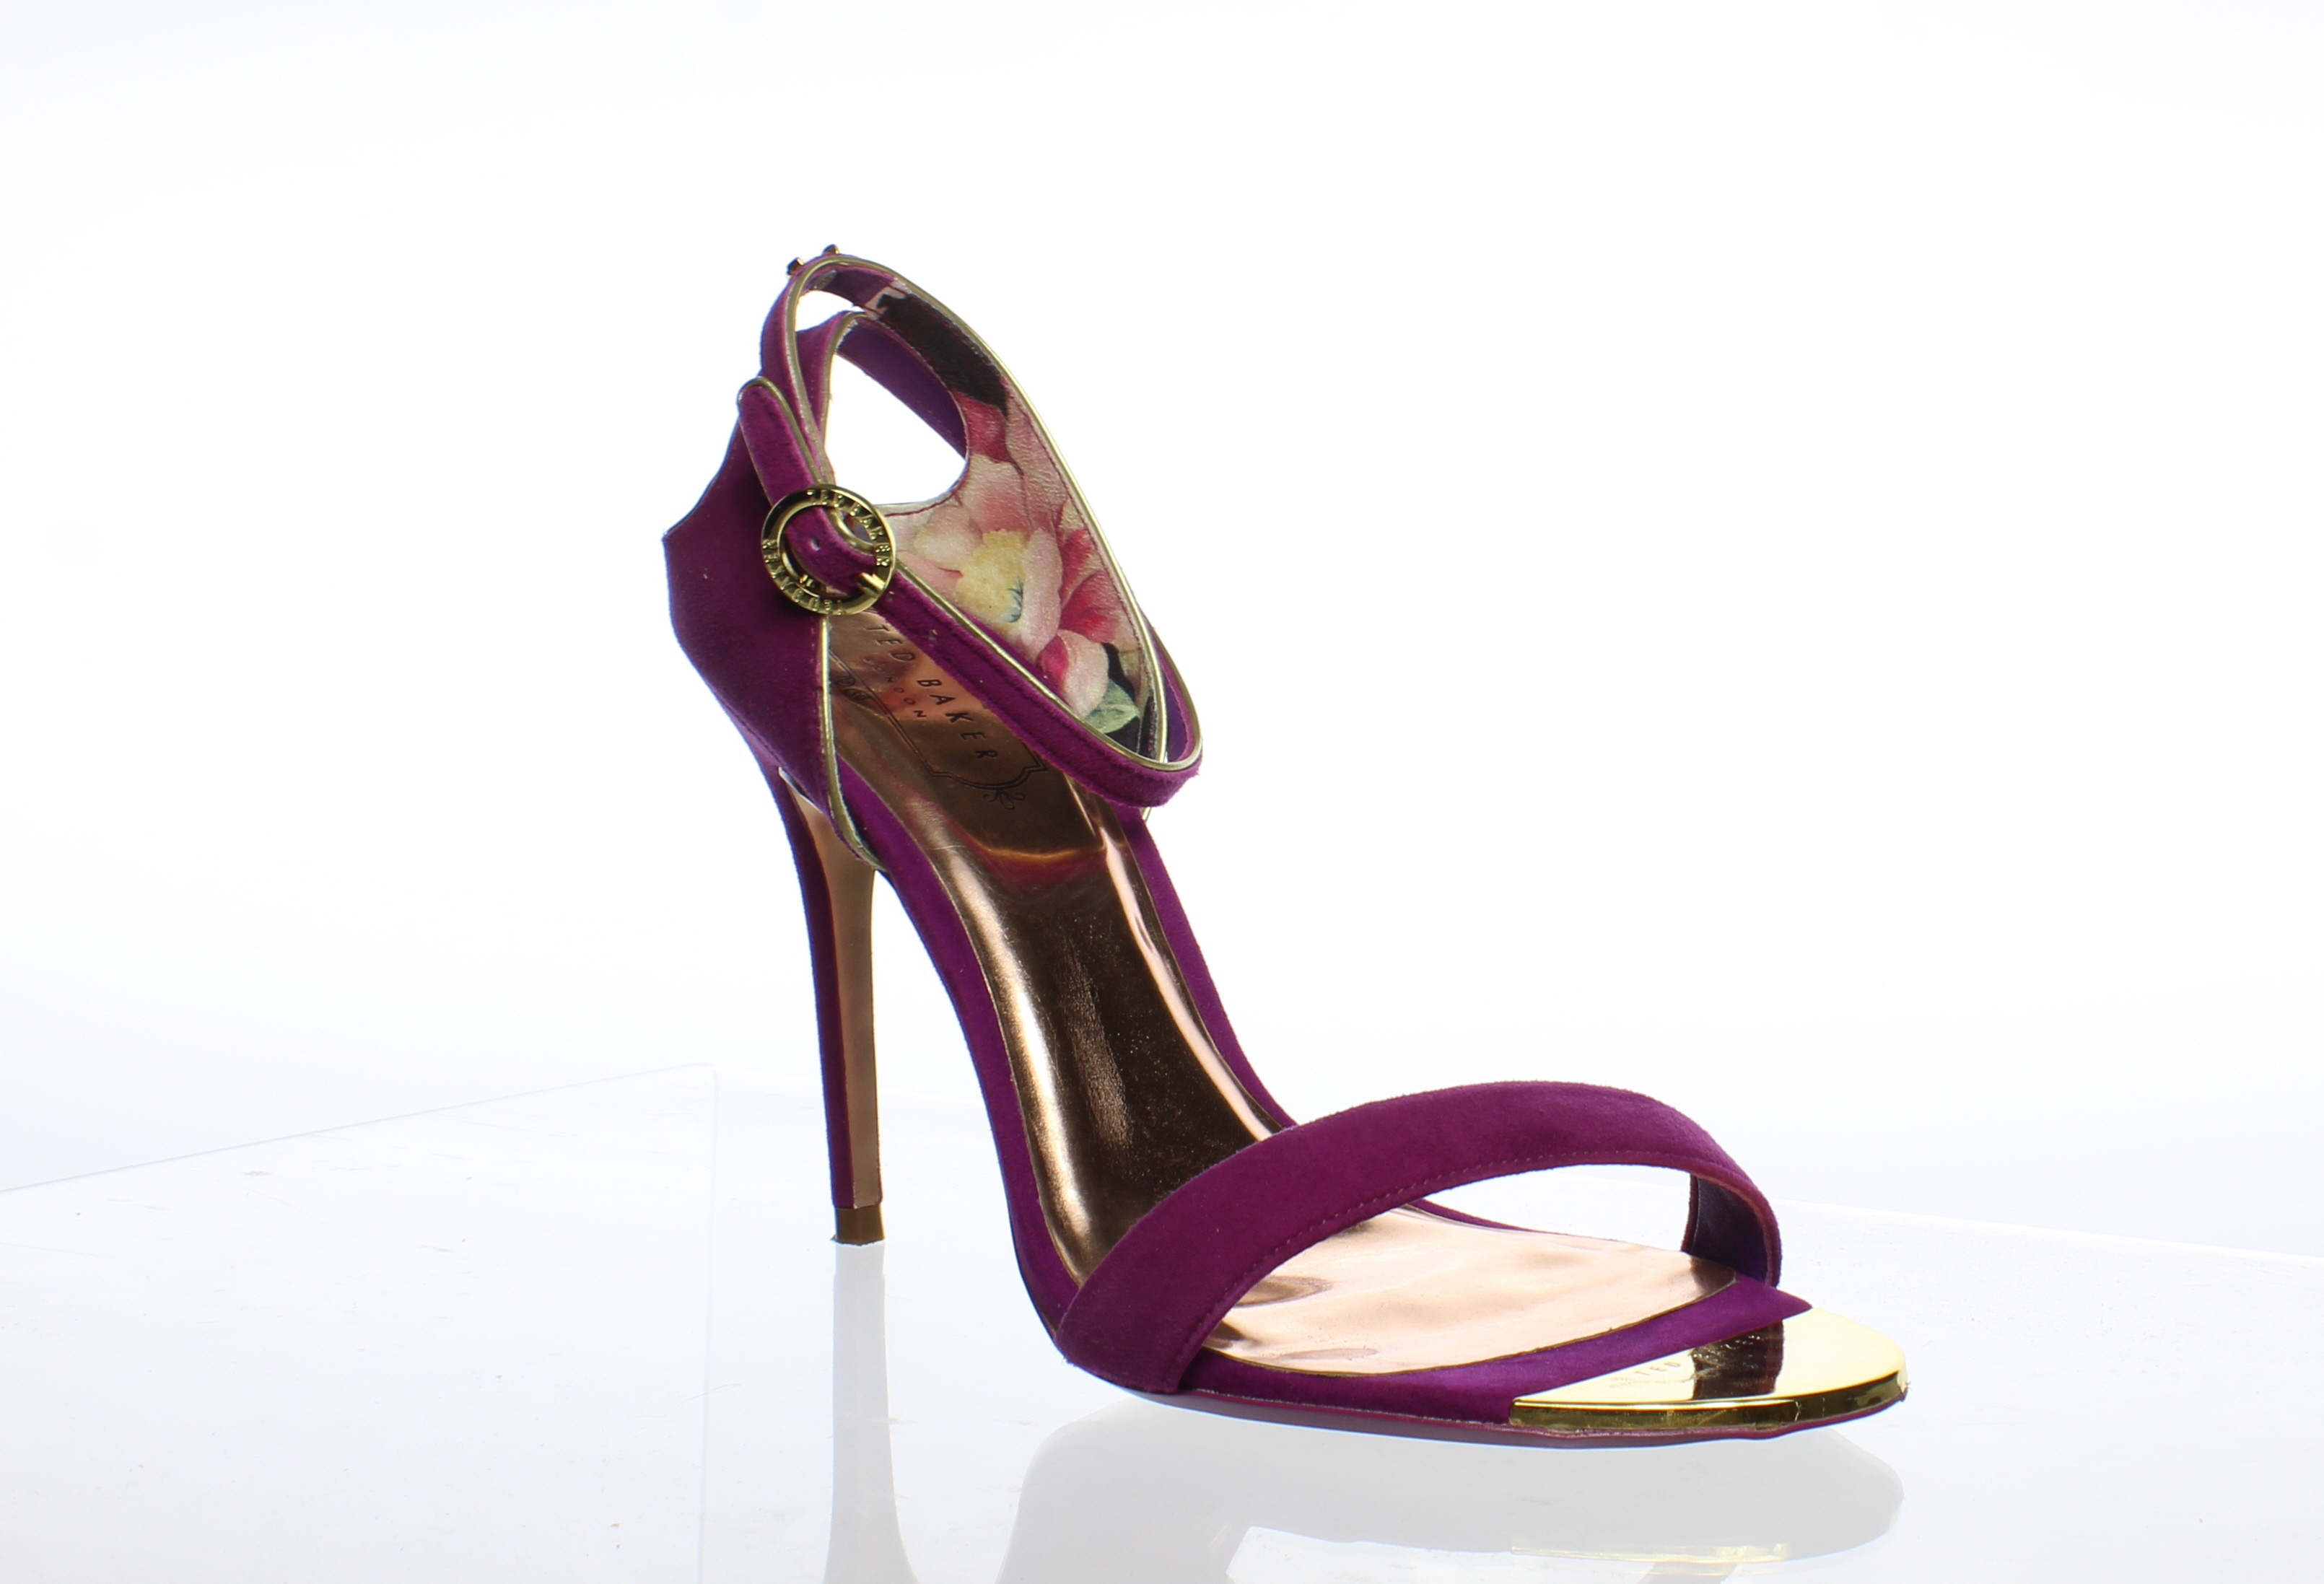 88fa1f0a0 Ted Baker Womens Mirobell Pink Ankle Strap Heels Size 8.5 (213519 ...